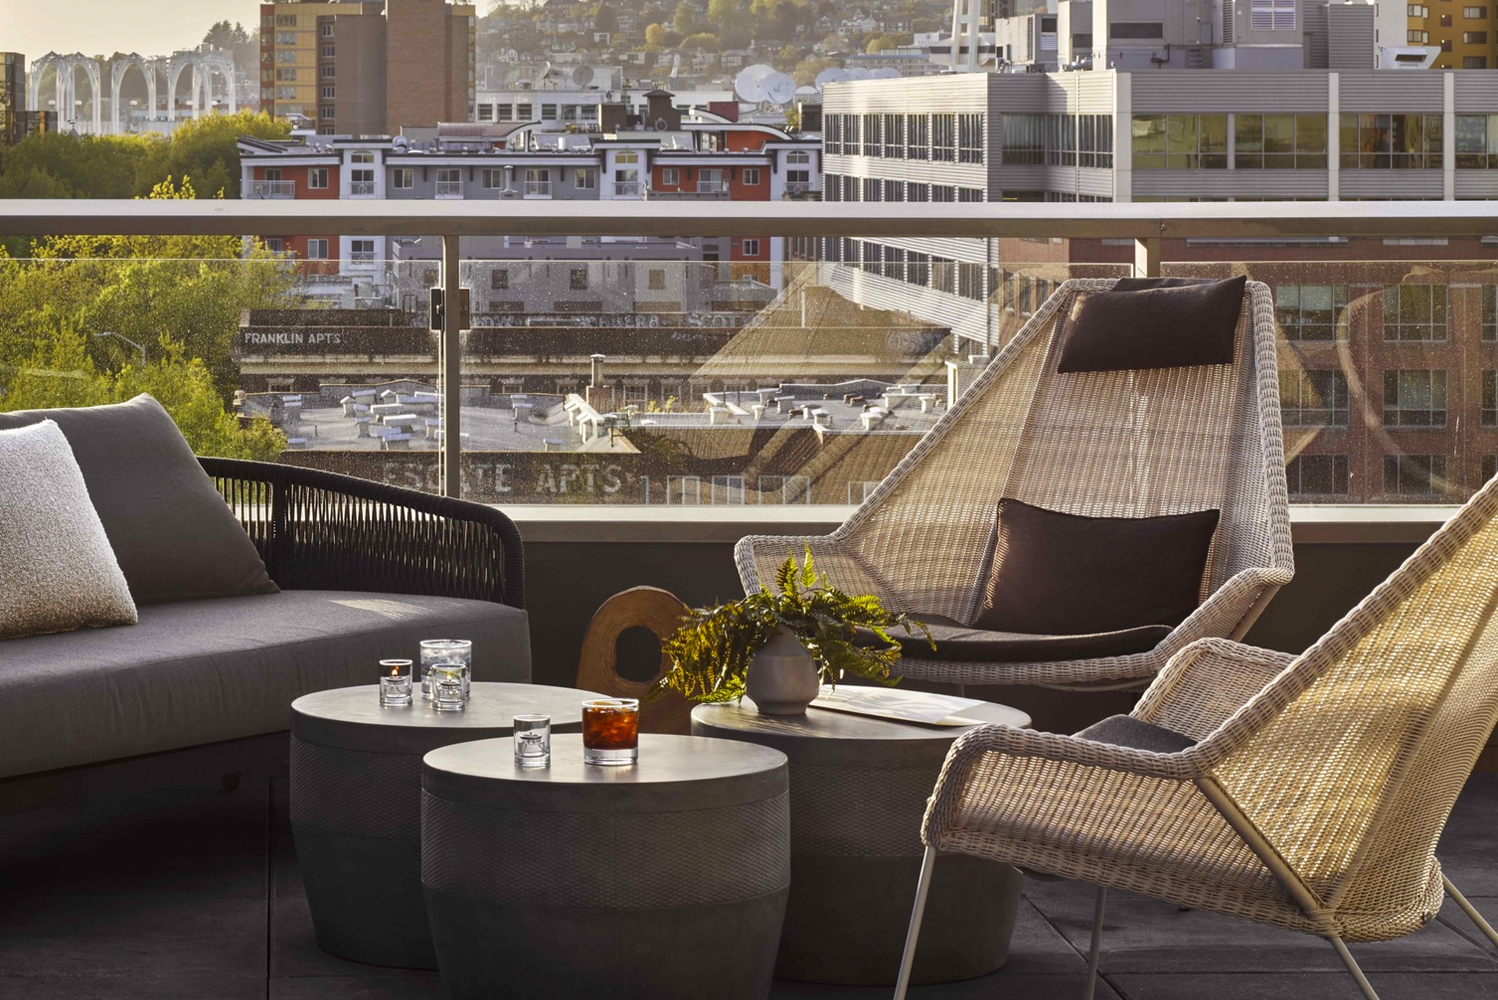 At the seventh floor, guests have views of the Space Needle and city skyline.